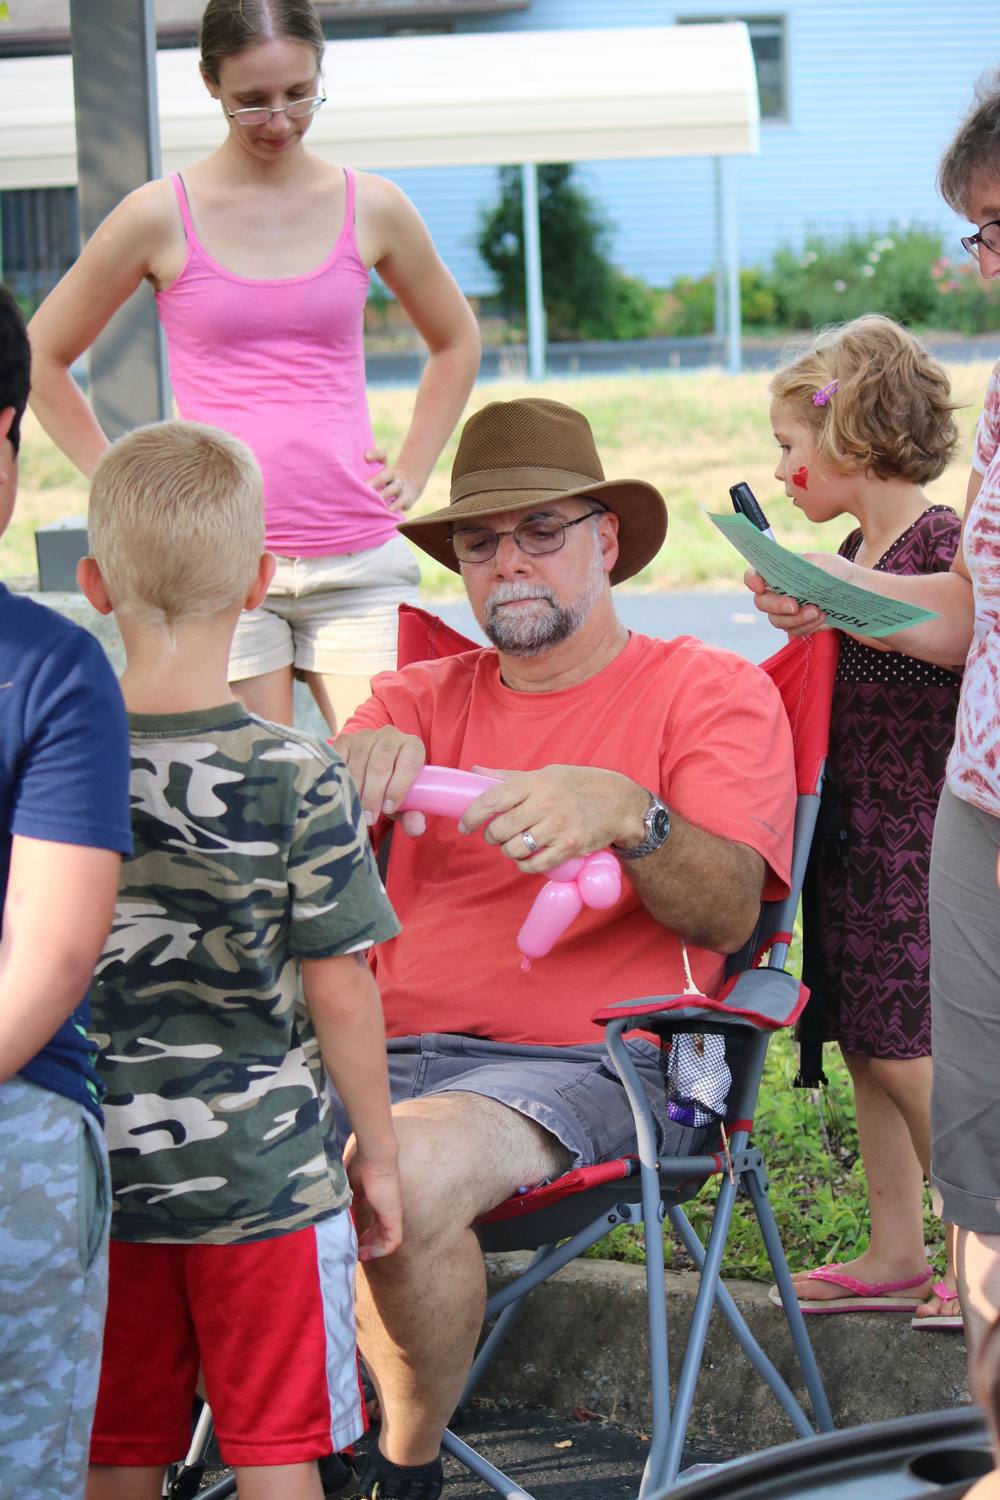 Phil Kniss, pastor of Park View Mennonite Church, creates a balloon animal at a neighborhood Kids Club Block Party. Photo by Trina Trotter Nussbaum